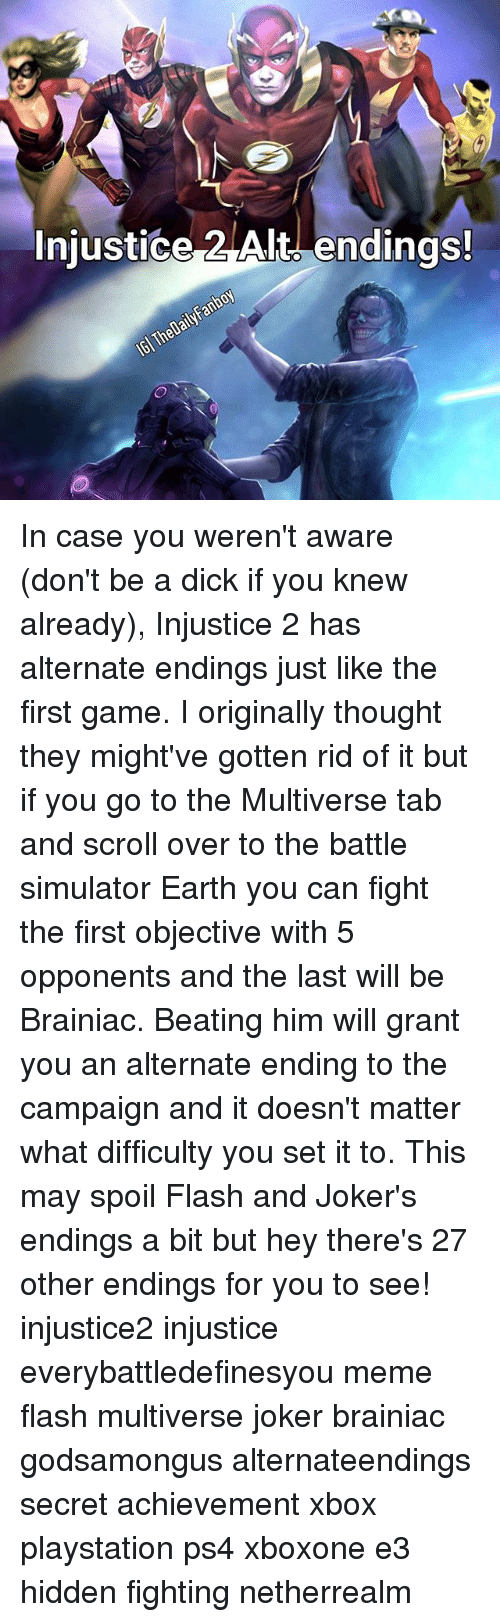 Dont Be A Dick: Injustice Alt endings! In case you weren't aware (don't be a dick if you knew already), Injustice 2 has alternate endings just like the first game. I originally thought they might've gotten rid of it but if you go to the Multiverse tab and scroll over to the battle simulator Earth you can fight the first objective with 5 opponents and the last will be Brainiac. Beating him will grant you an alternate ending to the campaign and it doesn't matter what difficulty you set it to. This may spoil Flash and Joker's endings a bit but hey there's 27 other endings for you to see! injustice2 injustice everybattledefinesyou meme flash multiverse joker brainiac godsamongus alternateendings secret achievement xbox playstation ps4 xboxone e3 hidden fighting netherrealm